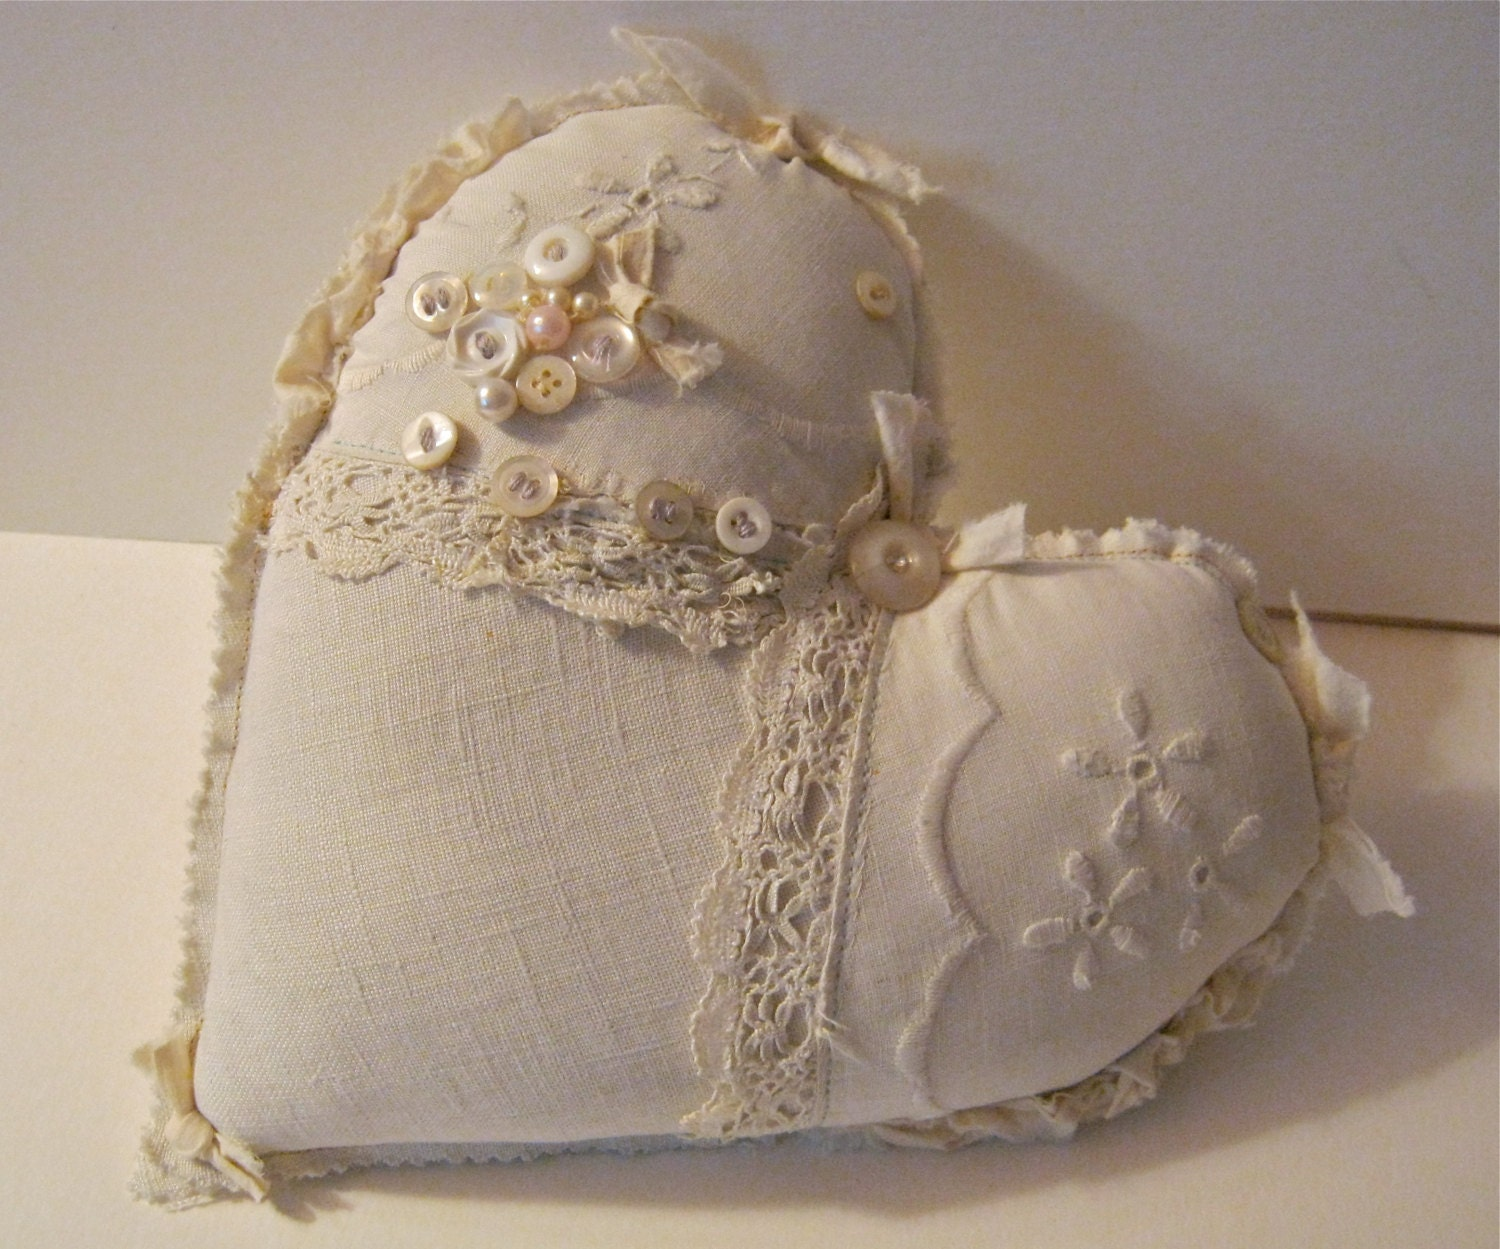 fabric ooak heart pillow pretty shabby chic pillow. Black Bedroom Furniture Sets. Home Design Ideas